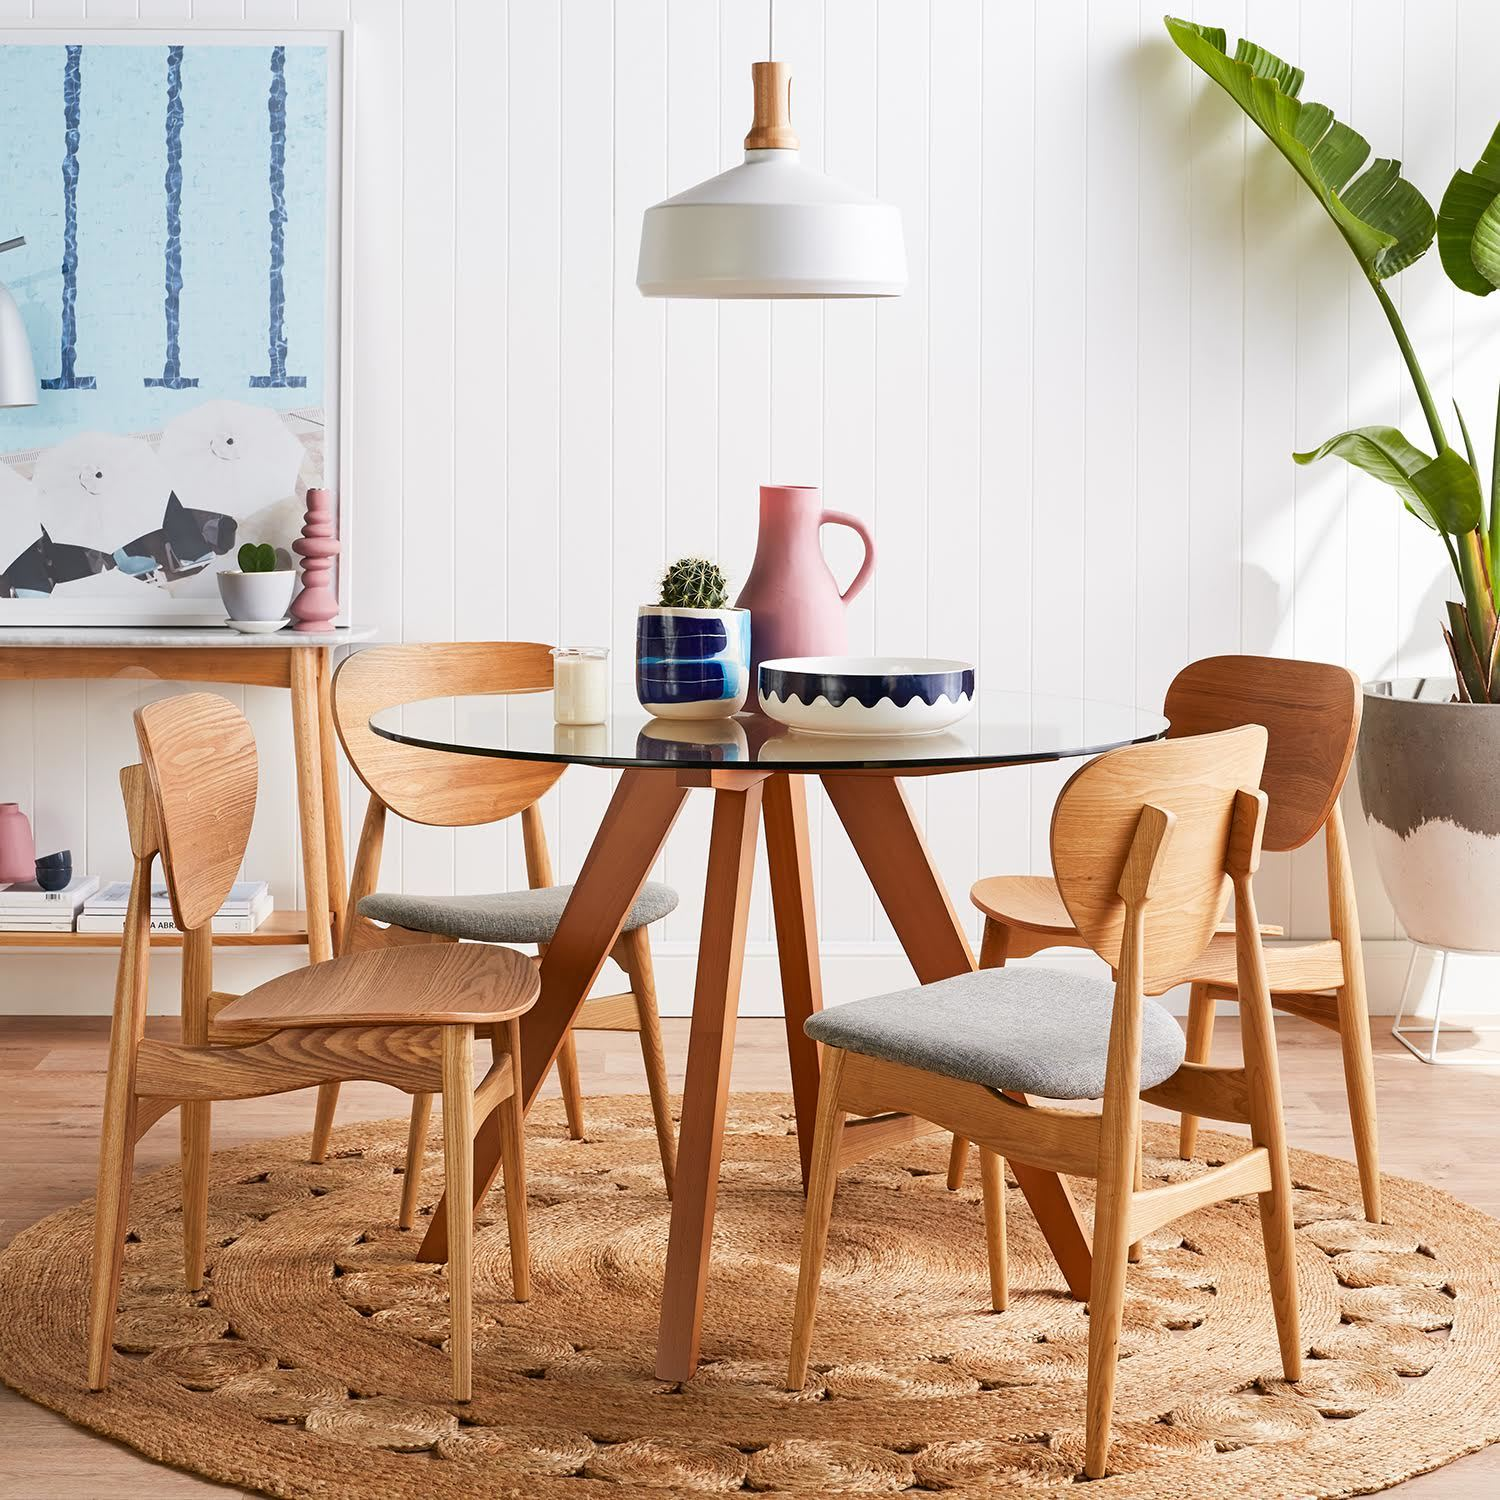 Furniture Homewares Warehouse Sale This Weekend Up To 65 Off